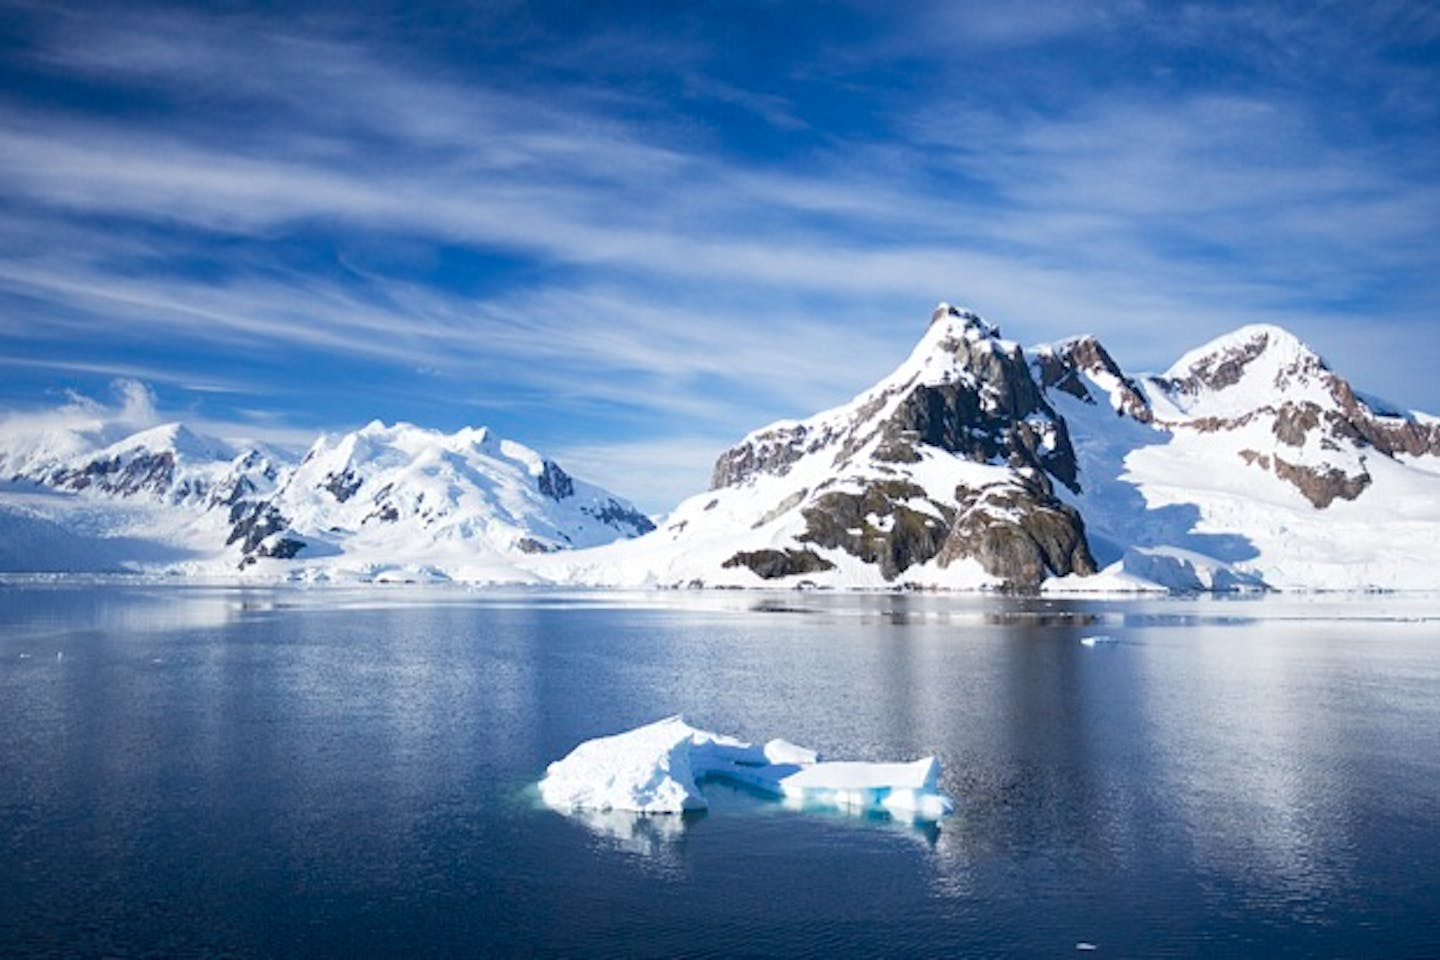 Antarctica ice and mountain